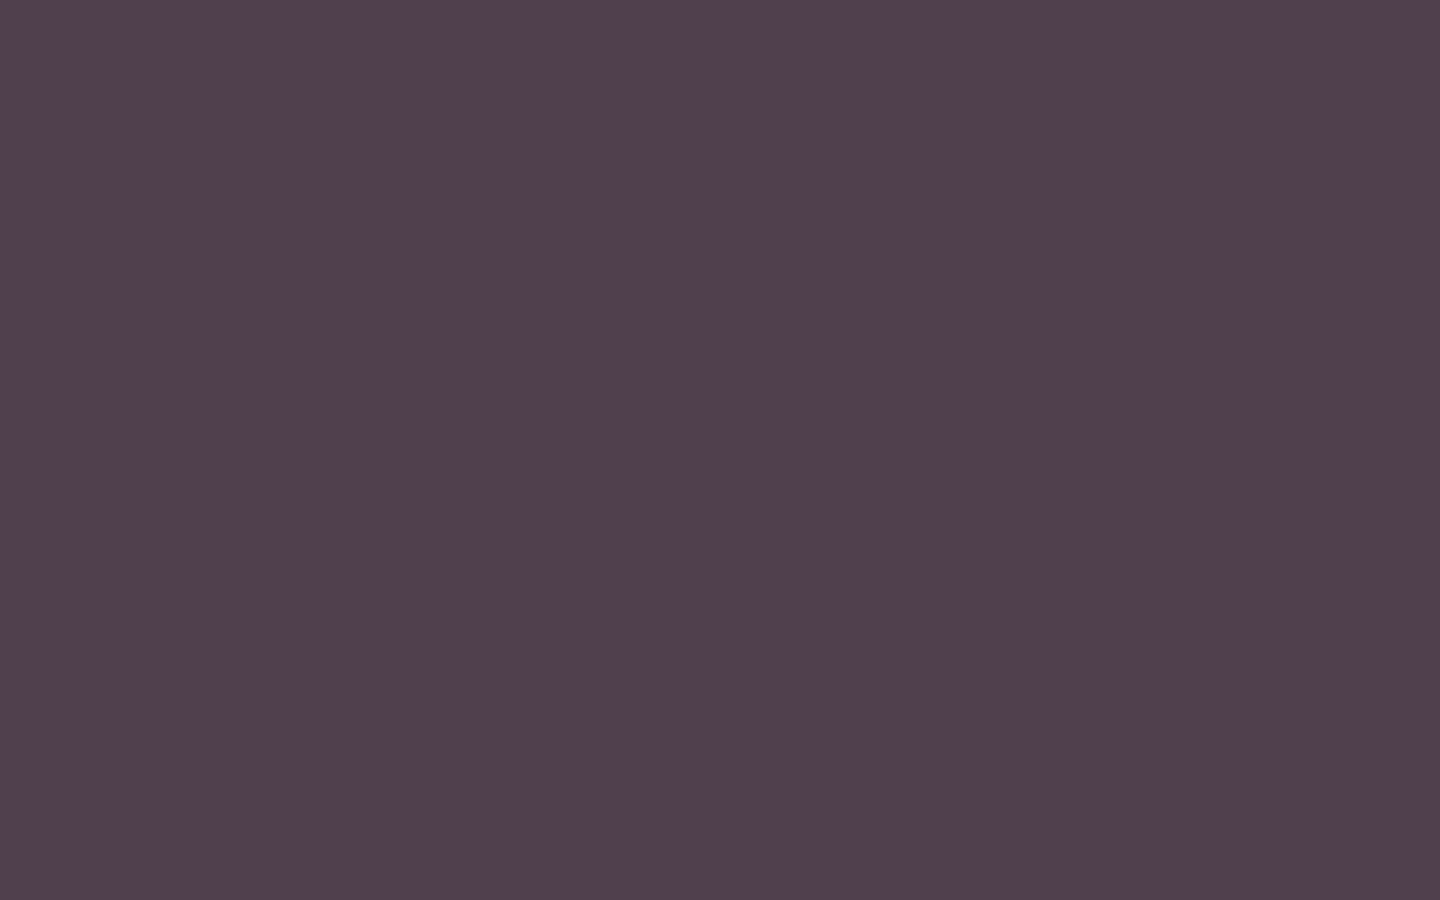 1440x900 Purple Taupe Solid Color Background